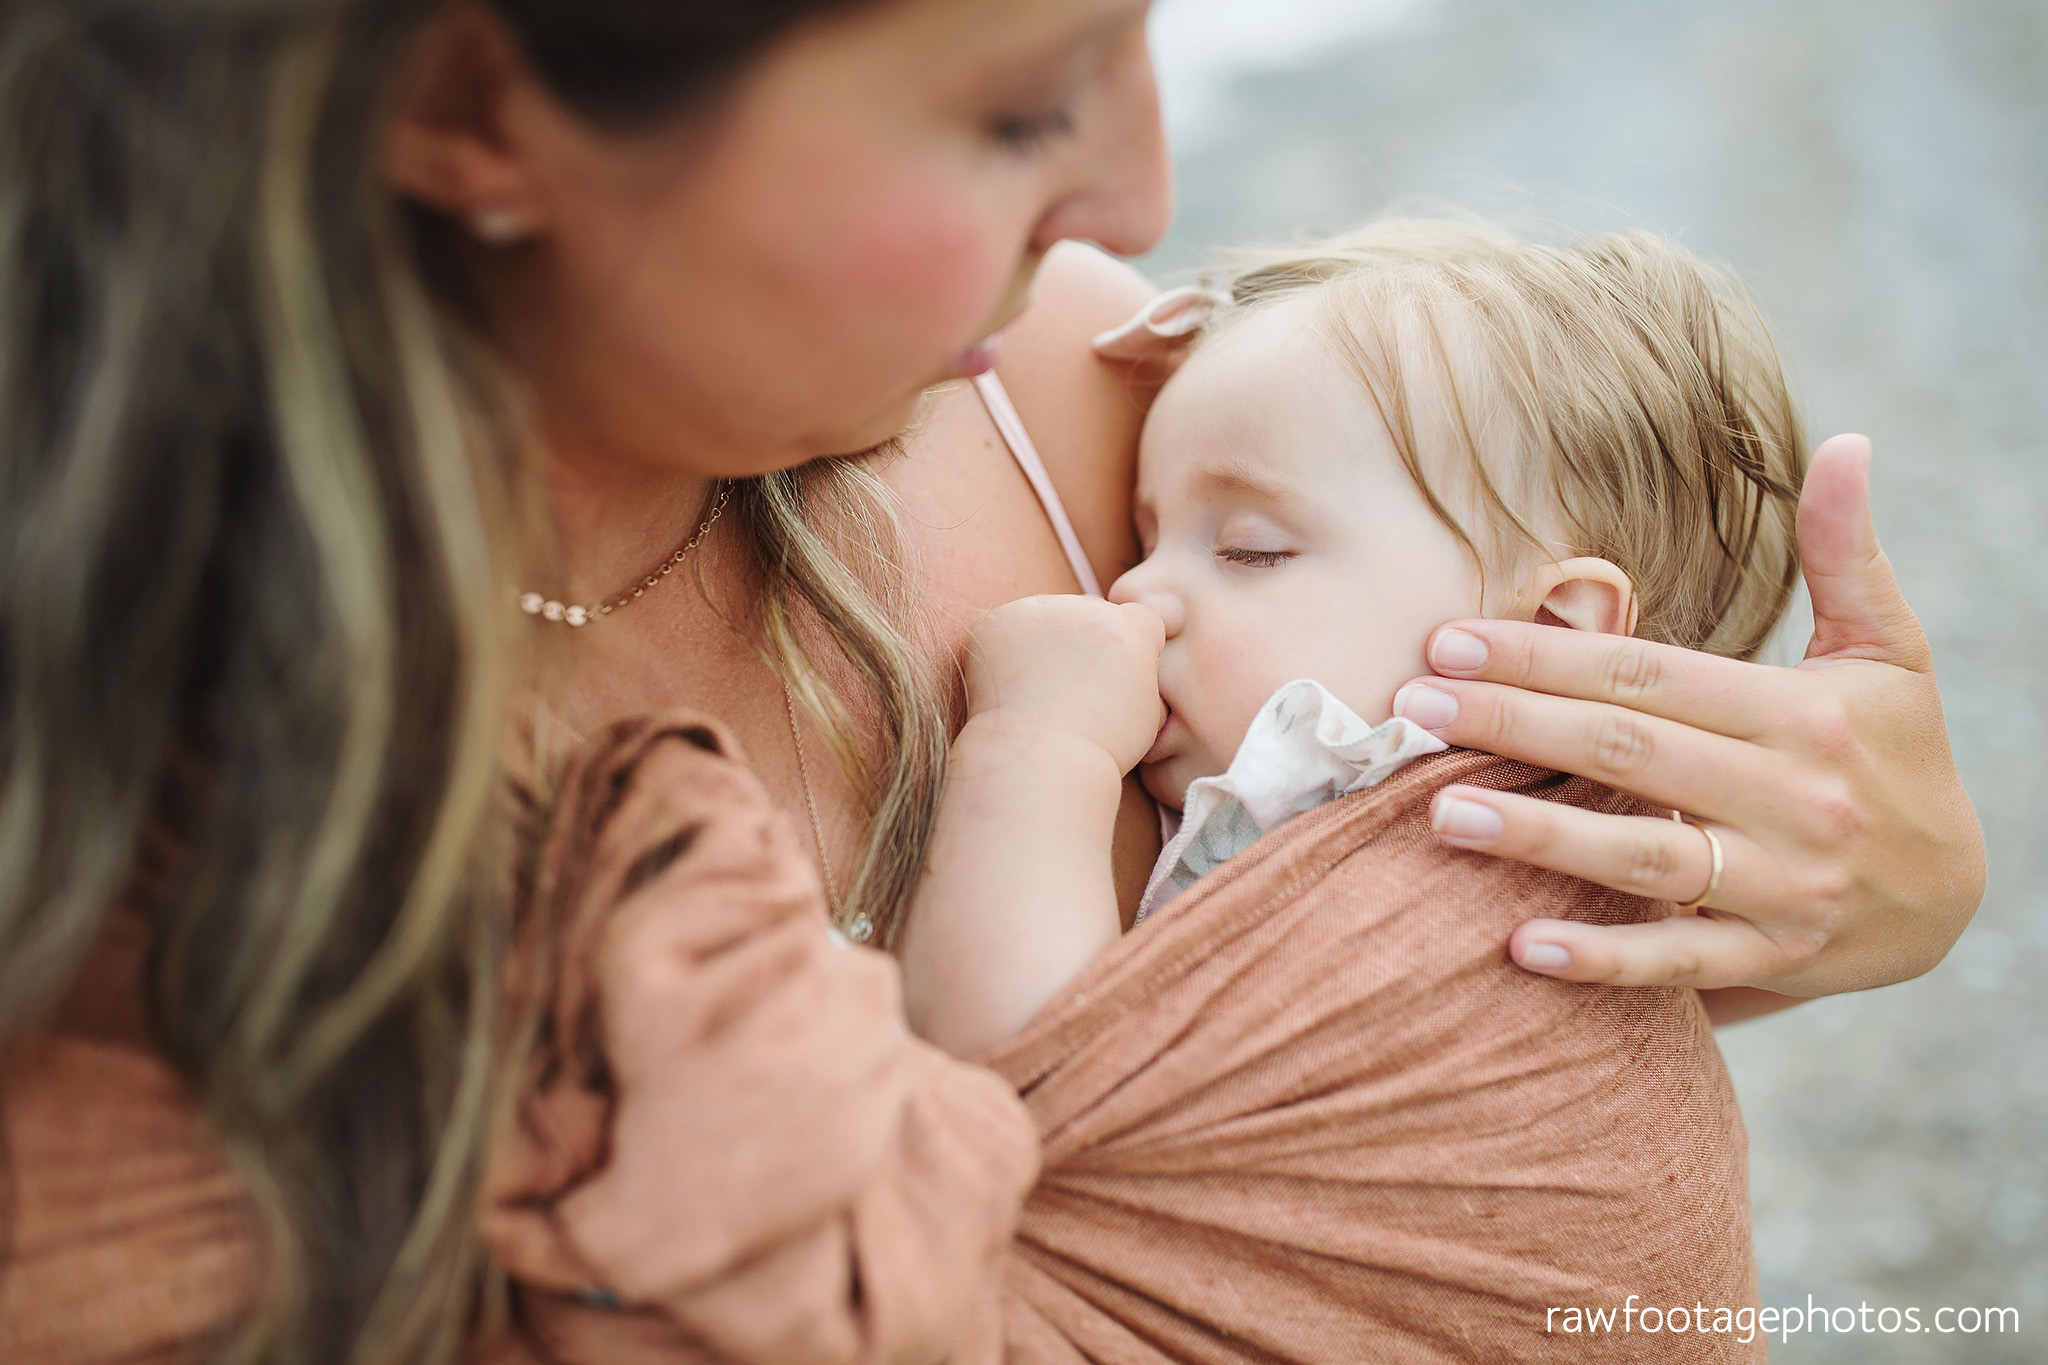 london_ontario_family_photography-lifestyle_photography-maternity_photos-raw_footage_photography-best_of_2018072.jpg